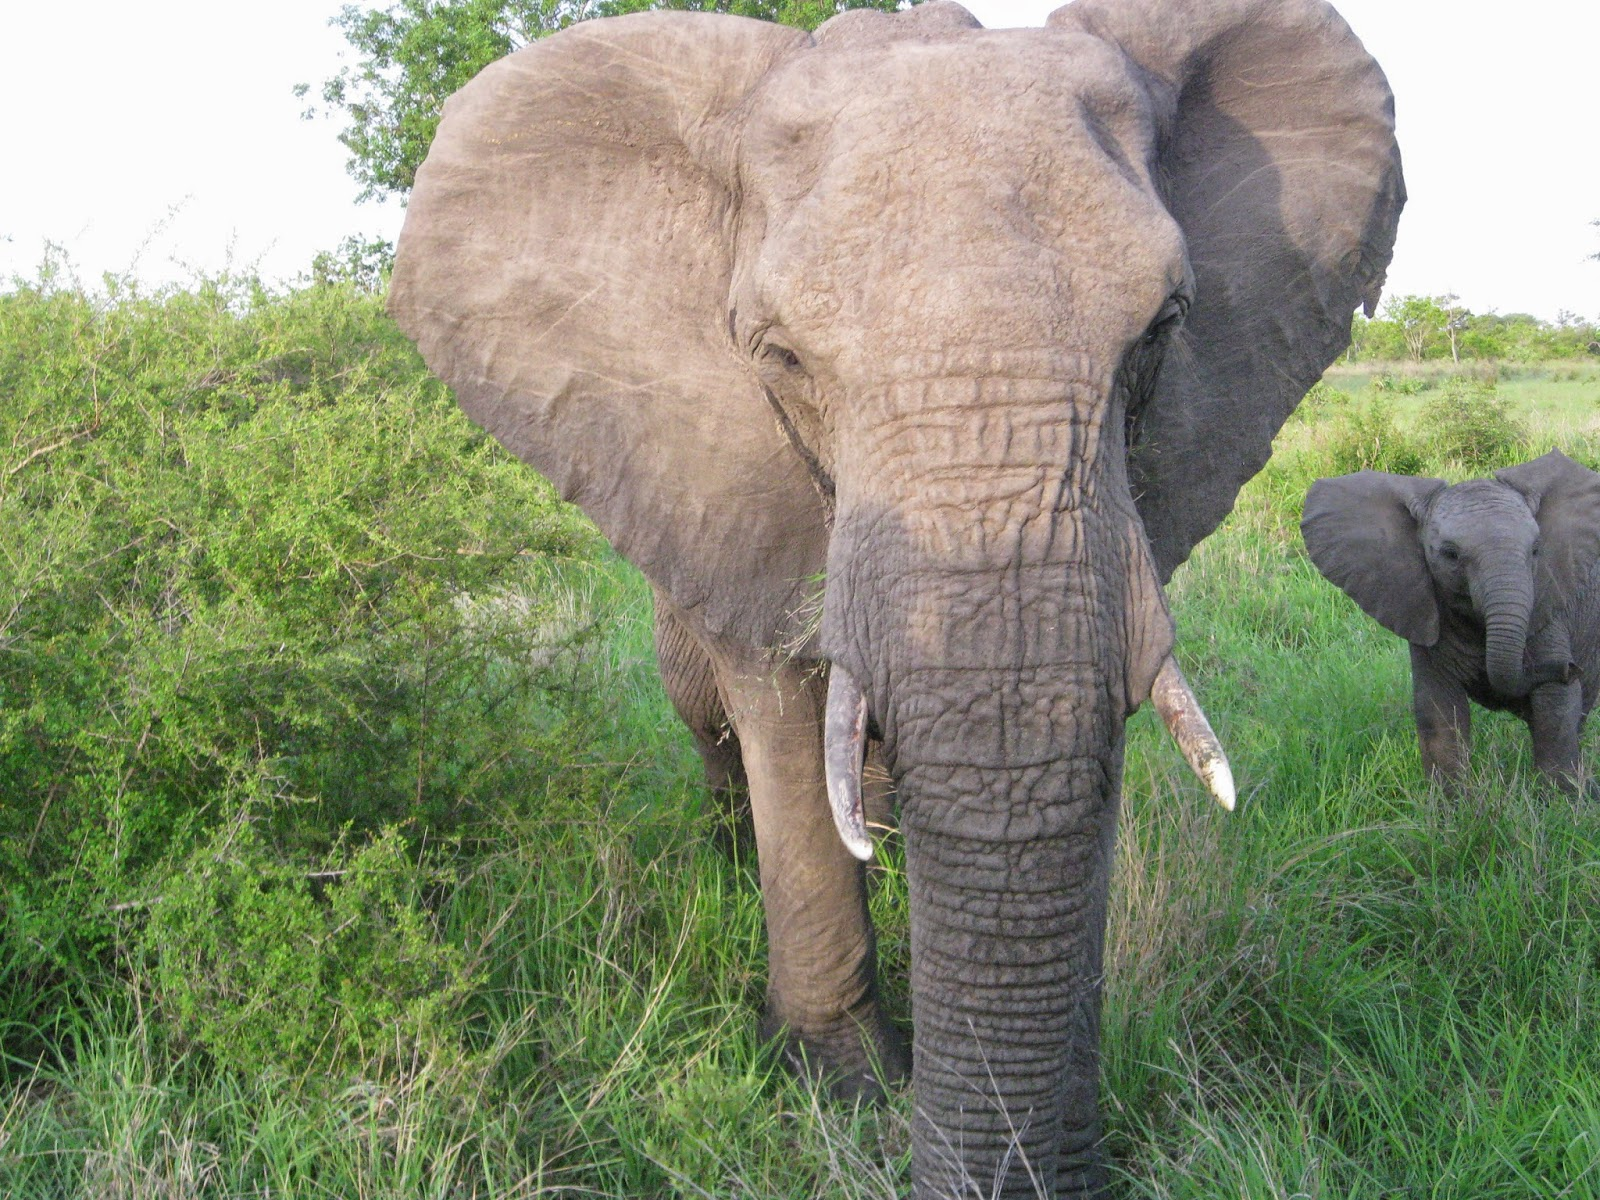 Sabi Sands - The bull elephant gets between us to protect the baby